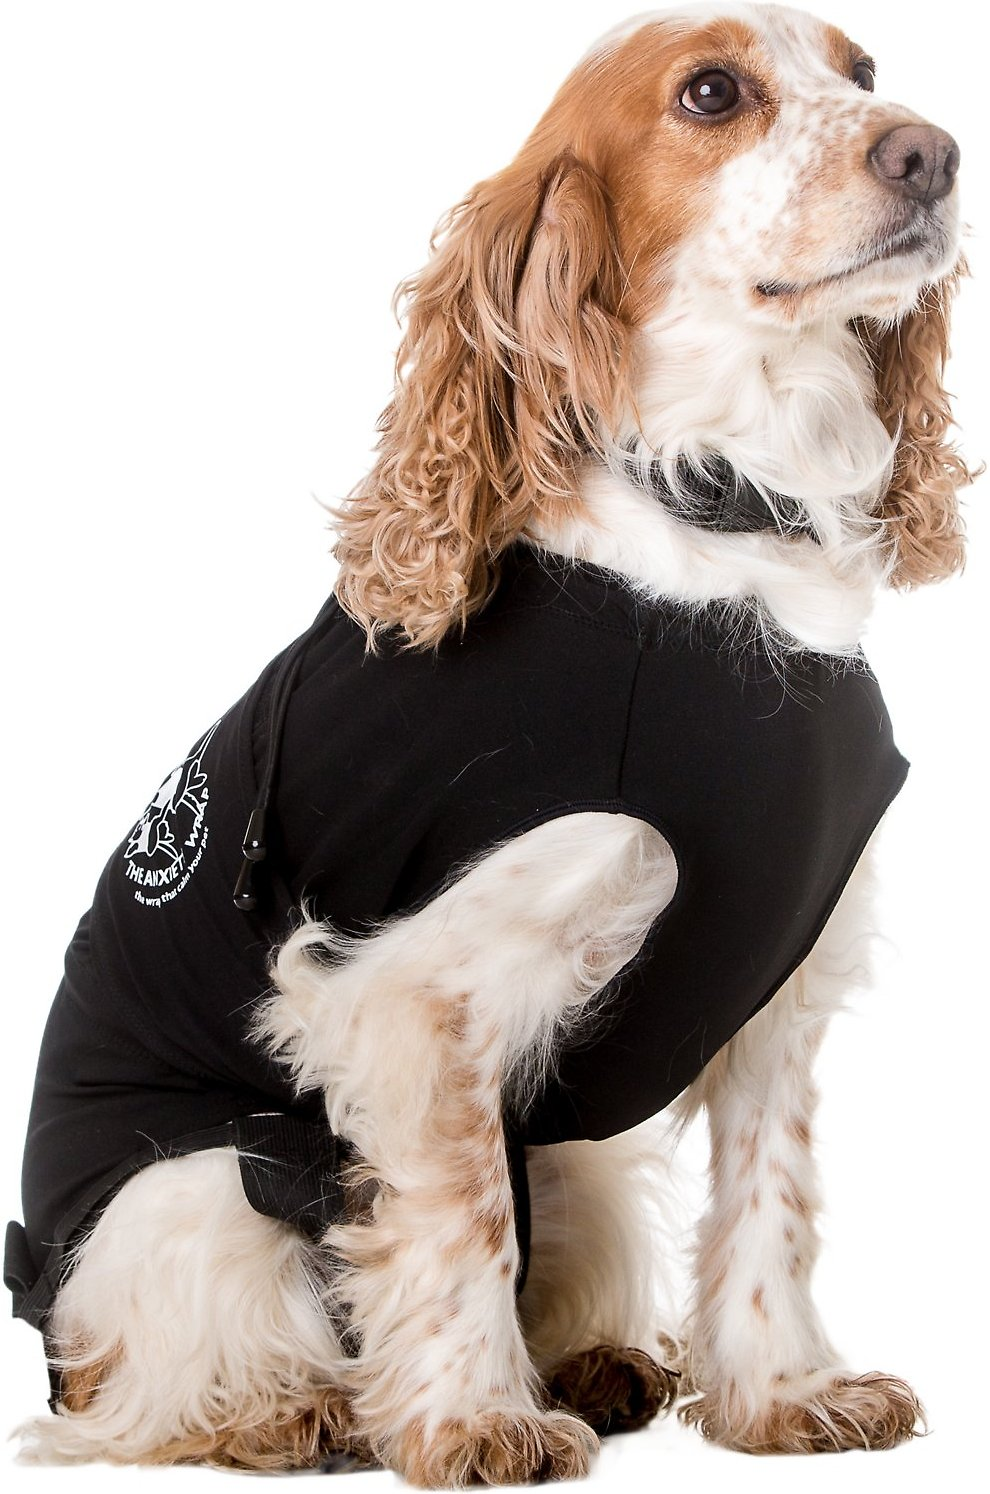 Anxiety Wrap Pressure Wrap For Dogs Small Chewy Com